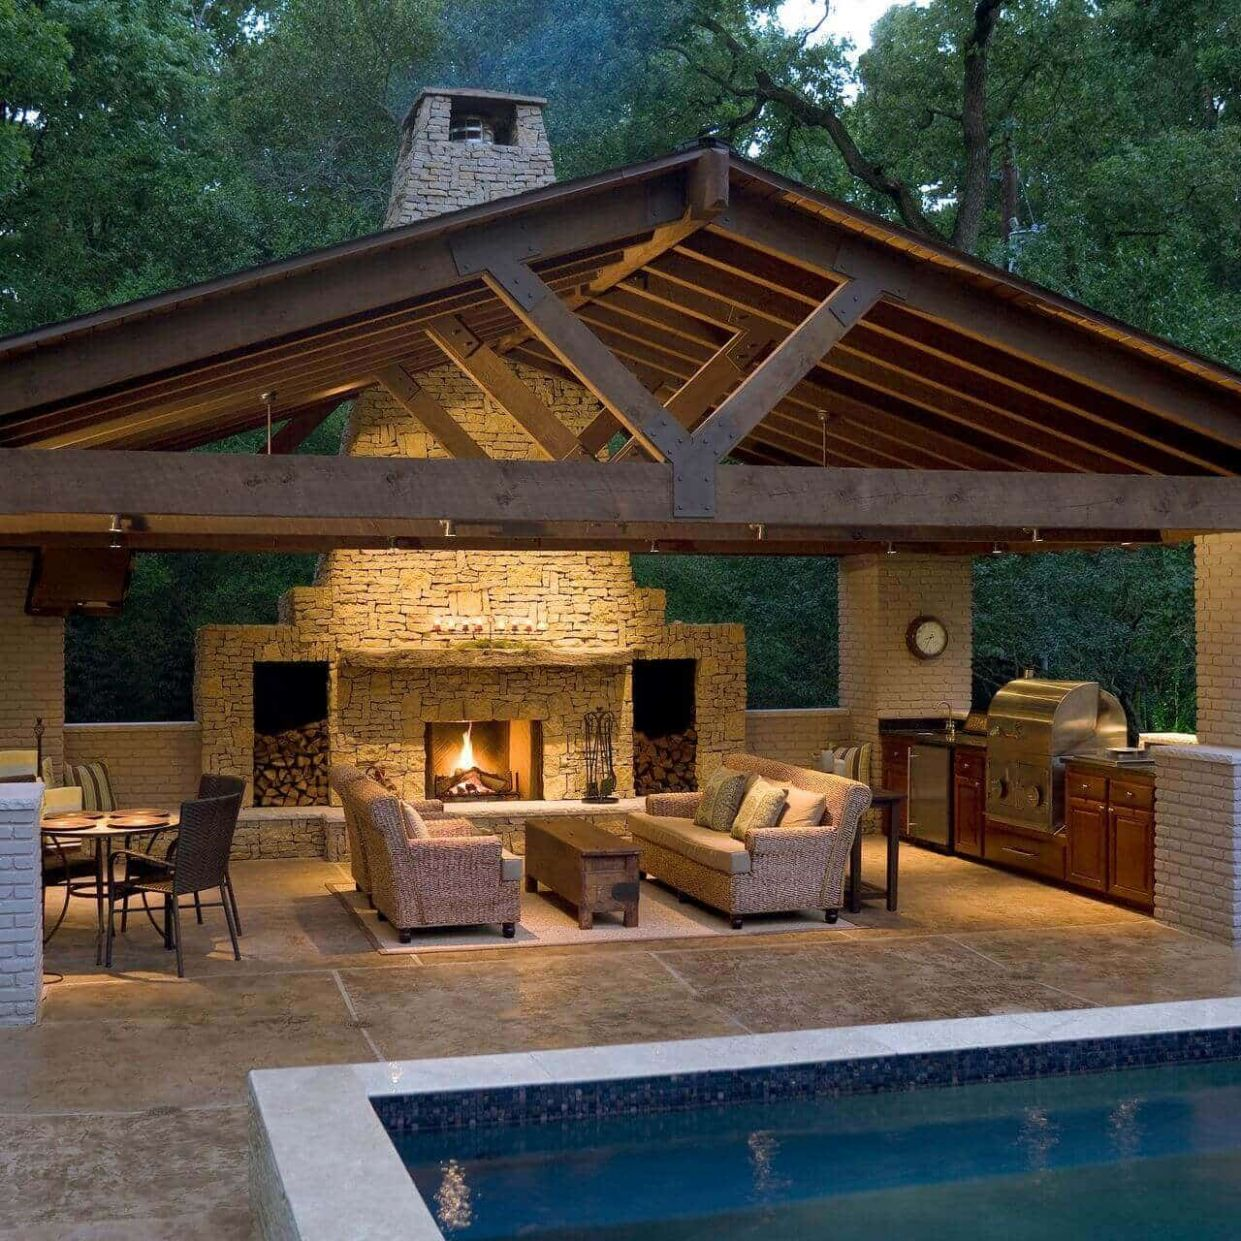 Best Pool House Design Ideas That Complete Your Dream - The ..